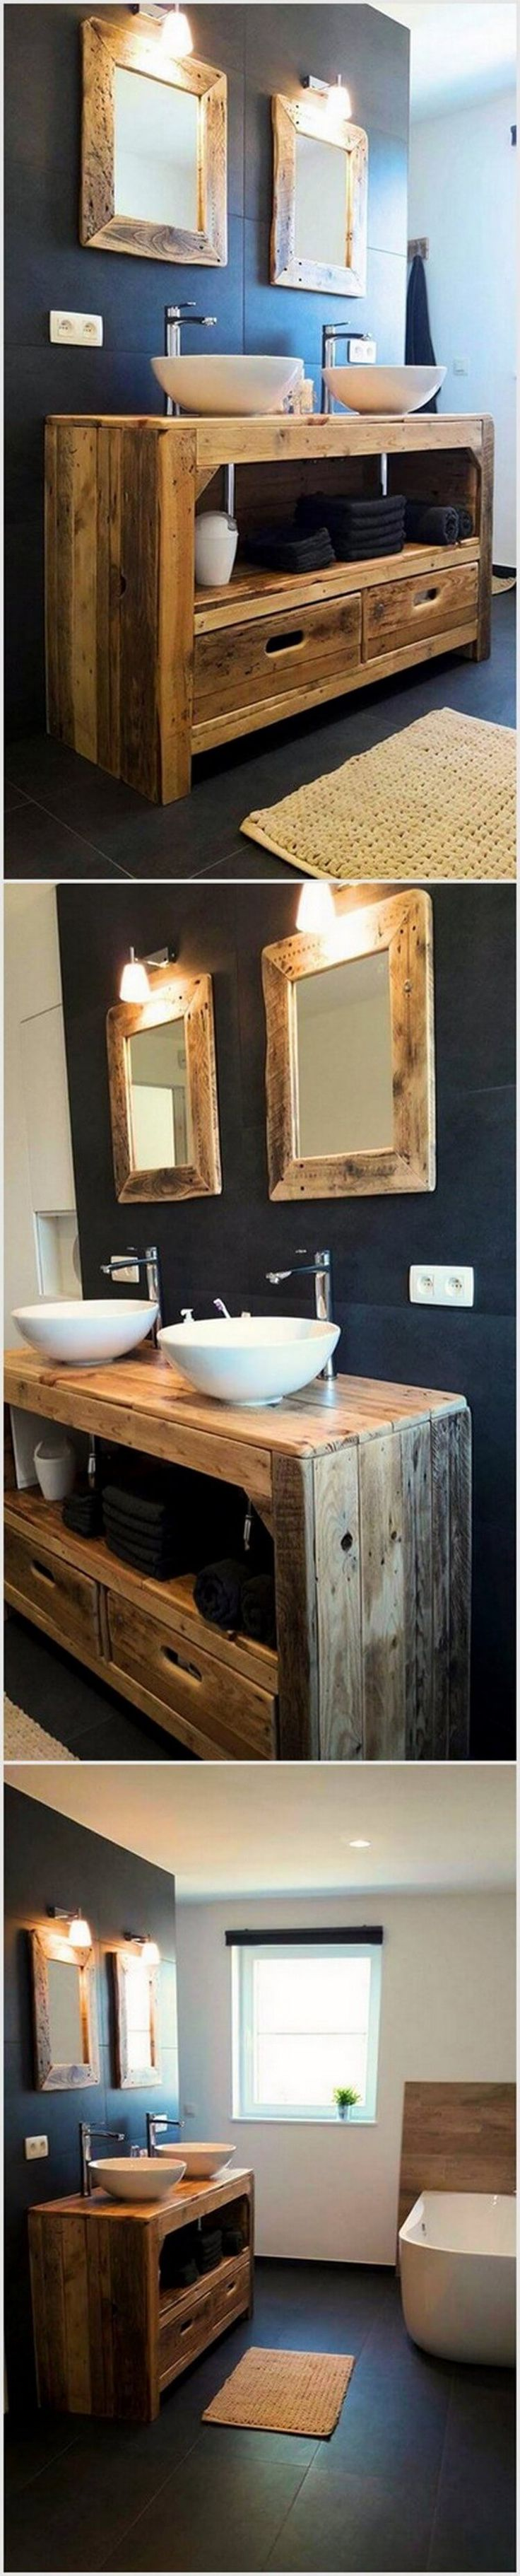 Best 25 pallet bathroom ideas on pinterest pallet towel for Bathroom ideas made from pallets